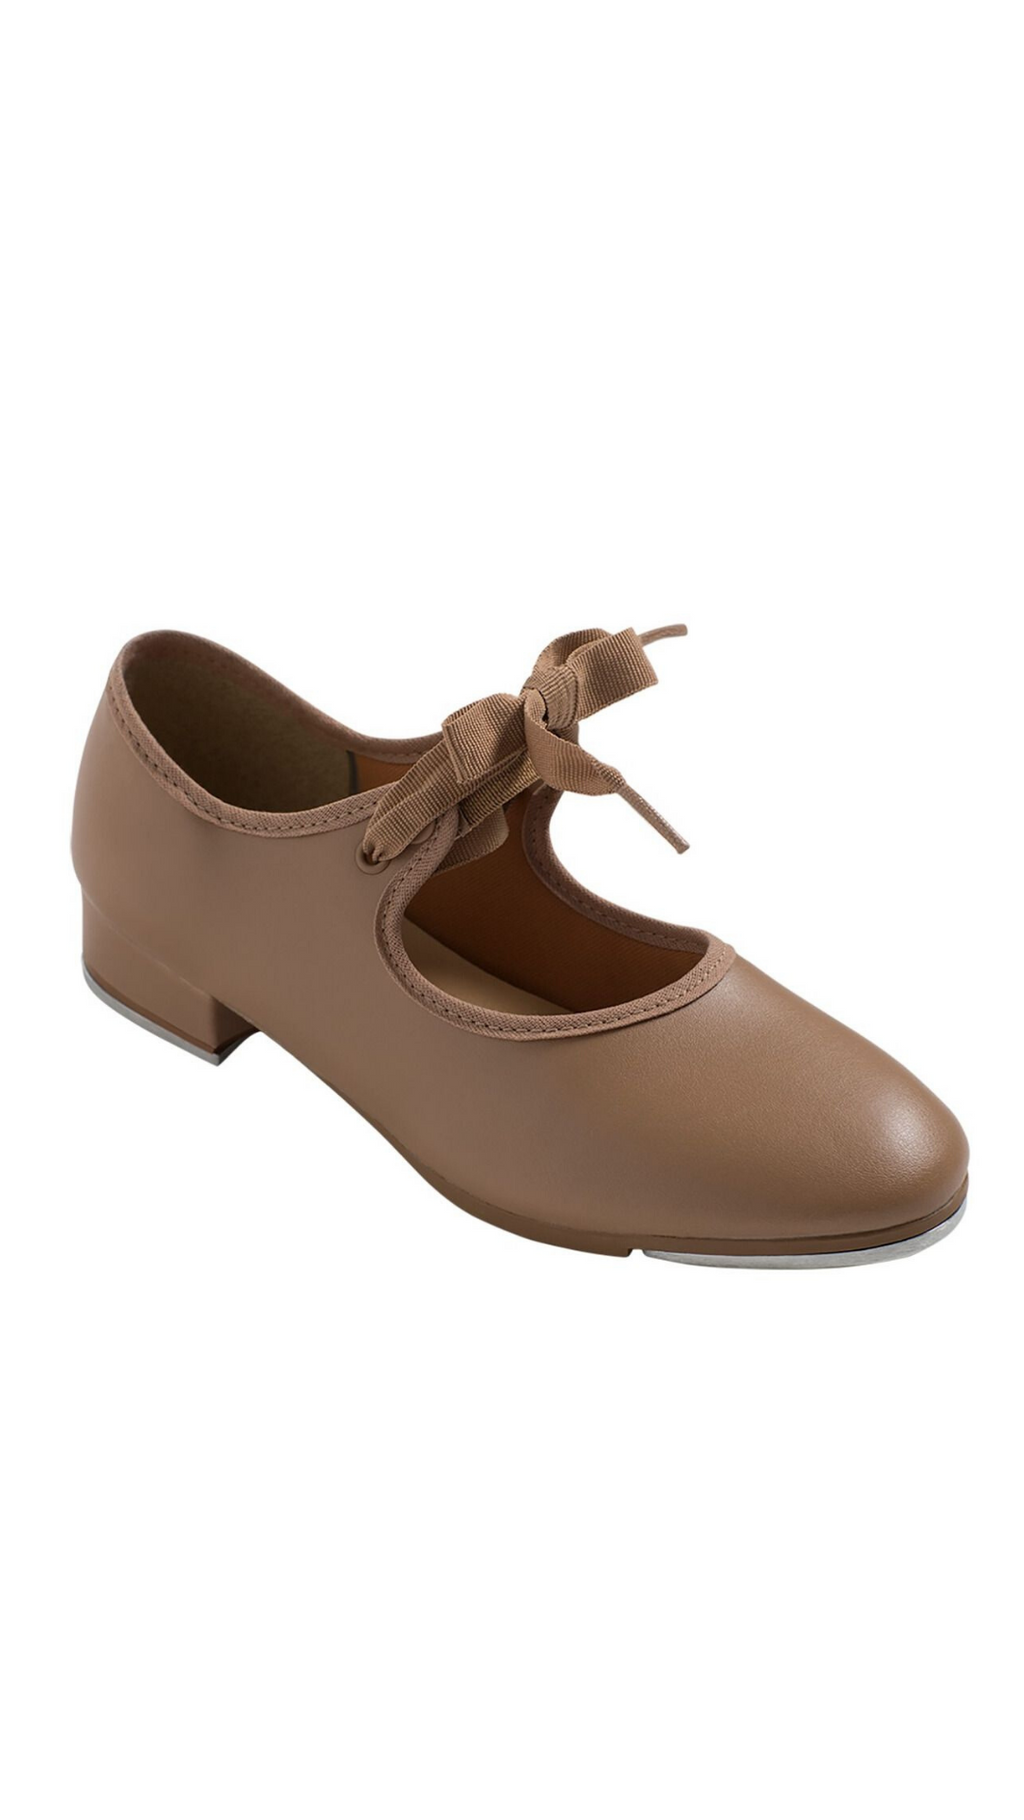 Val Tie and Snap Tap Shoe TA35-Child (Caramel)